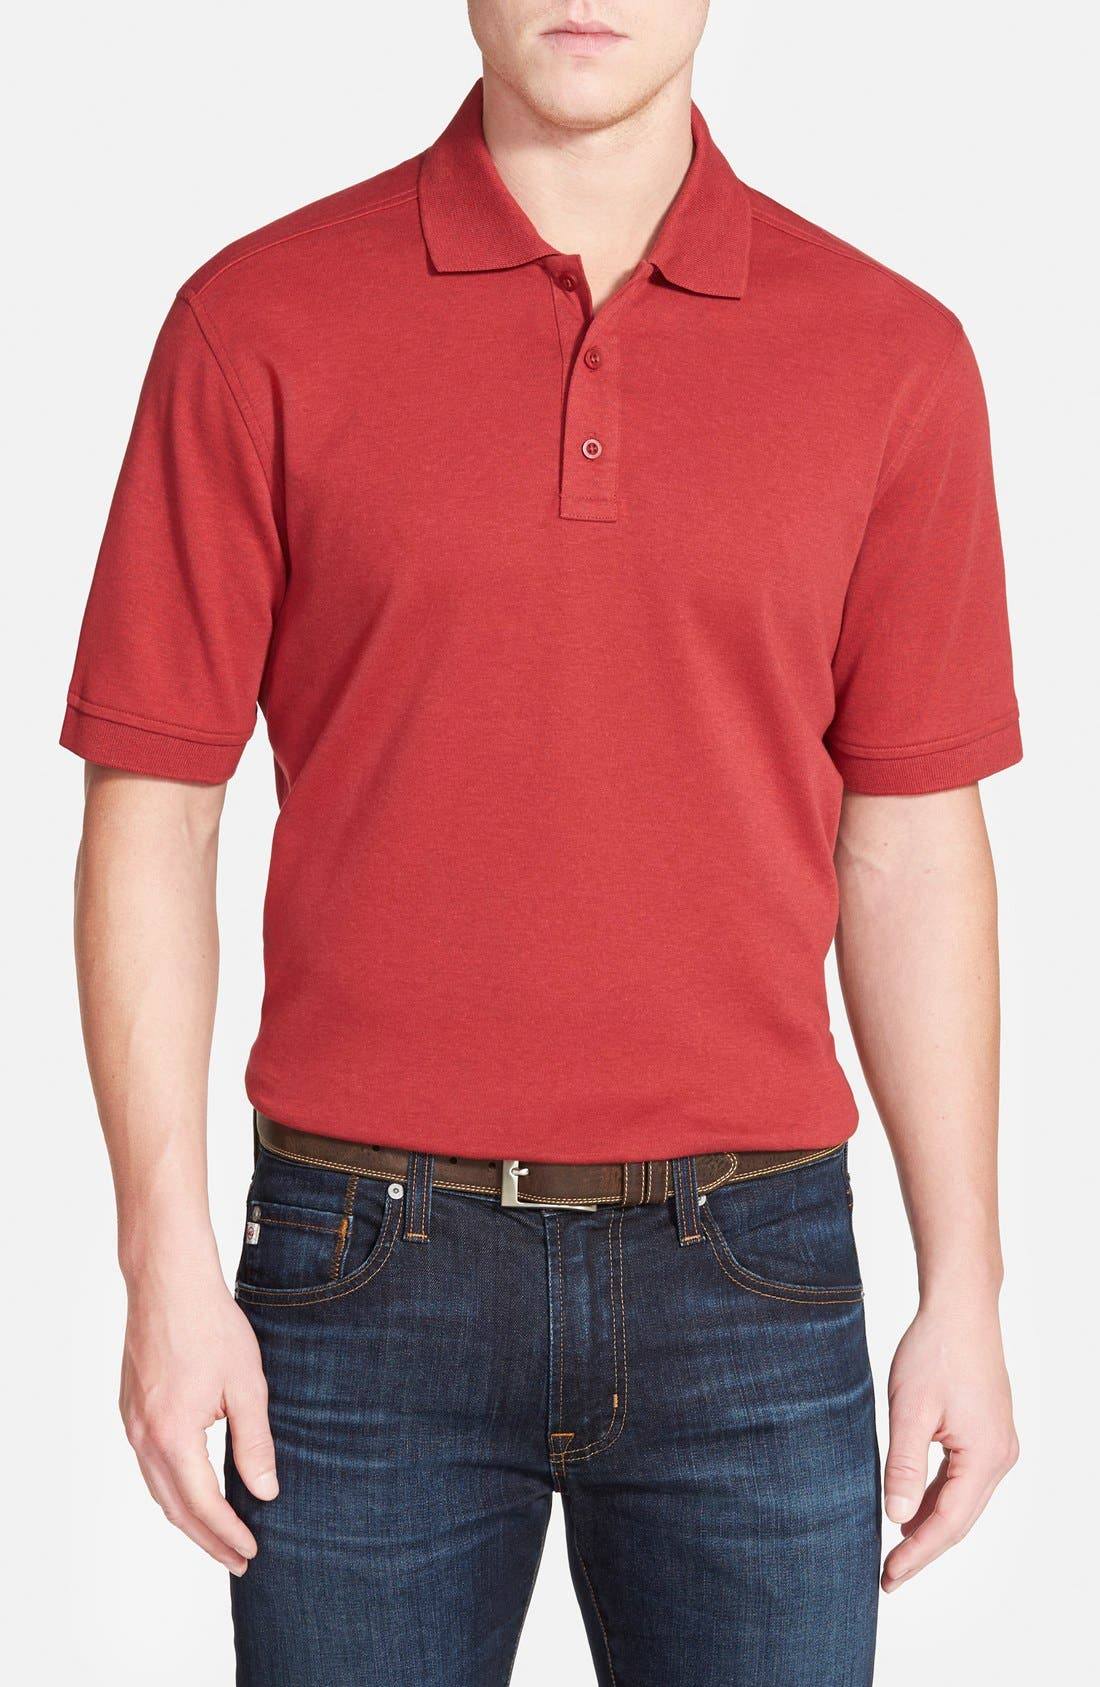 Alternate Image 1 Selected - Nordstrom Men's Shop Regular Fit Interlock Knit Polo